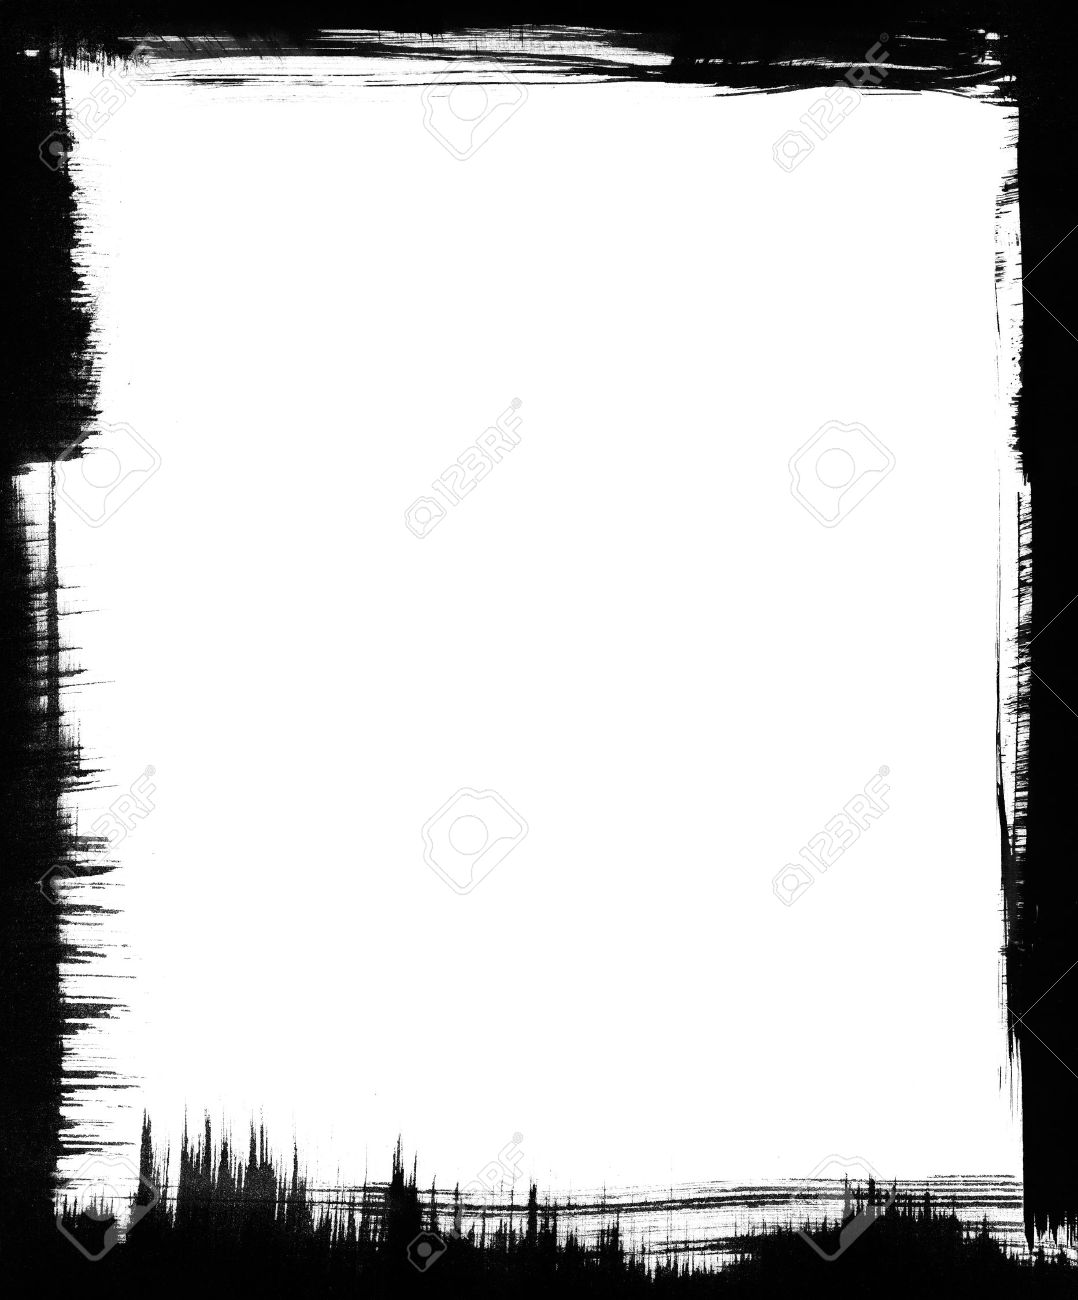 Black Brushstrokes Form A Graphic Frame Around A White Background ...